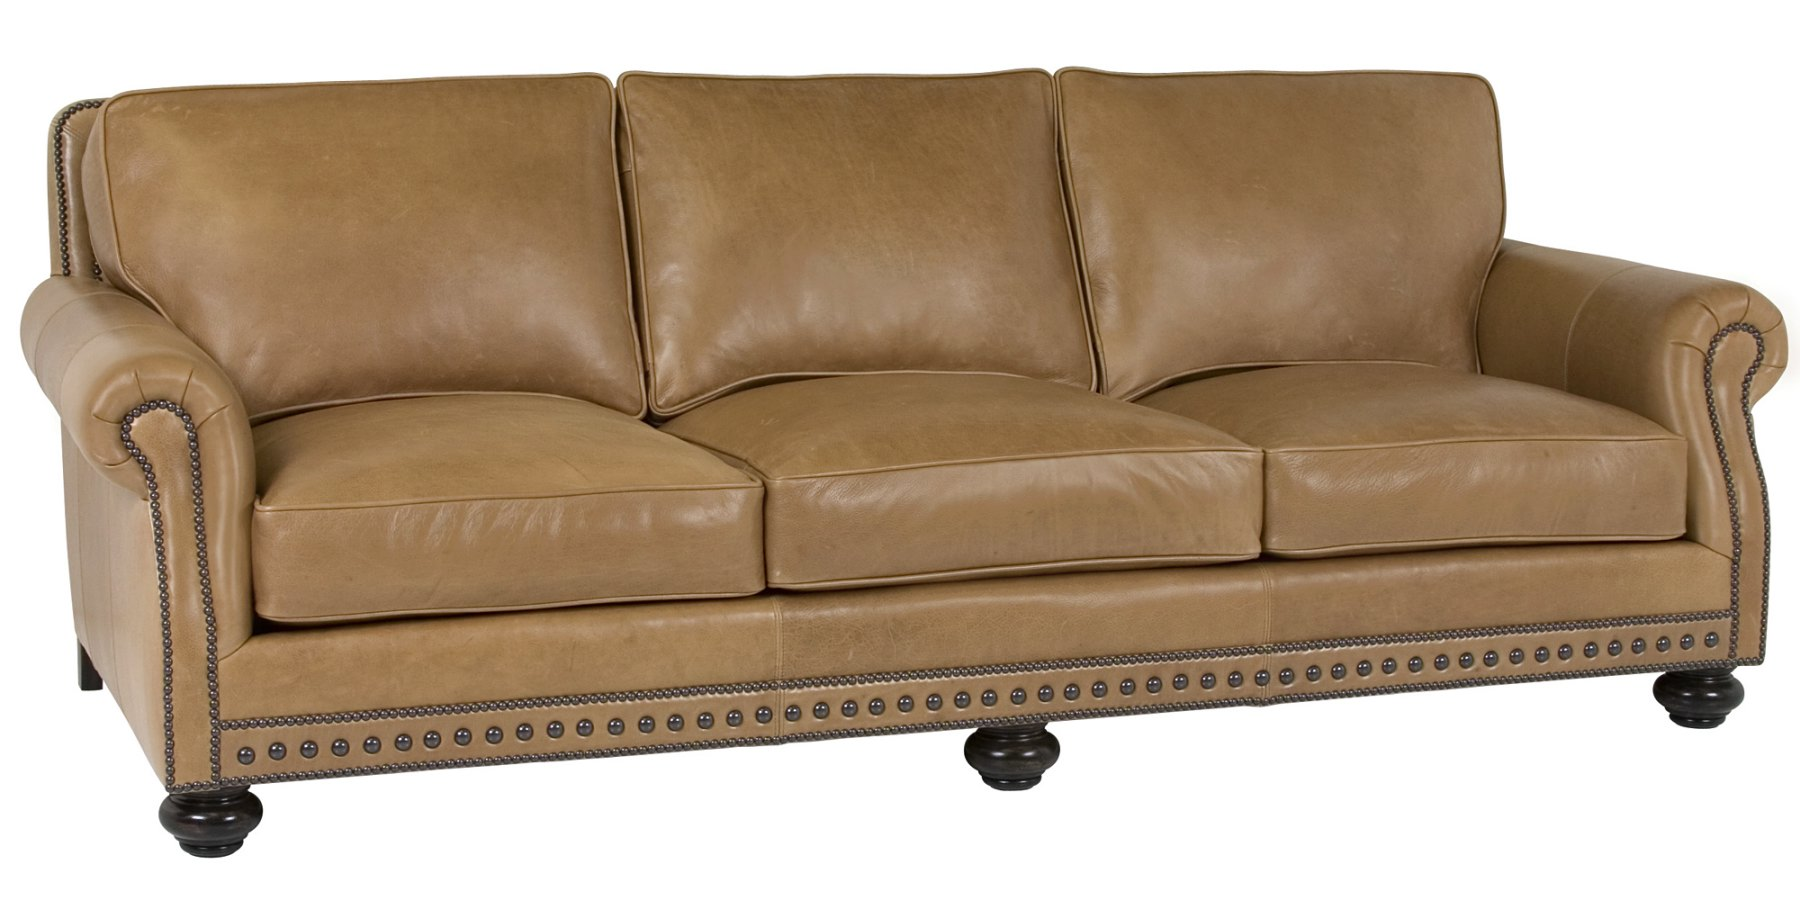 Leather pillow back sofa with rolled arms and nail trim club furniture Designer loveseats